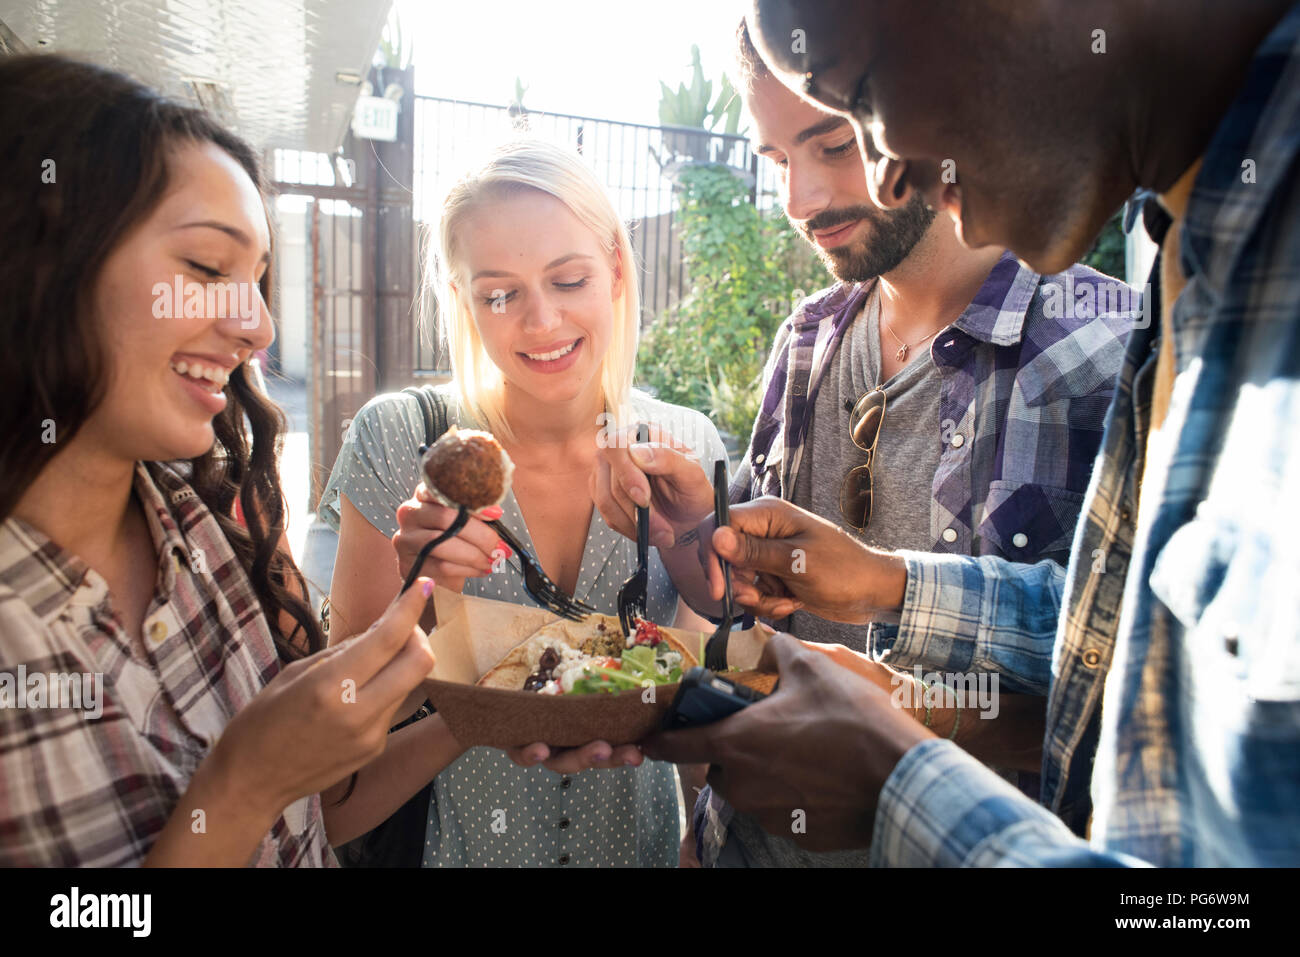 Happy friends sharing takeaway food outdoors Stock Photo